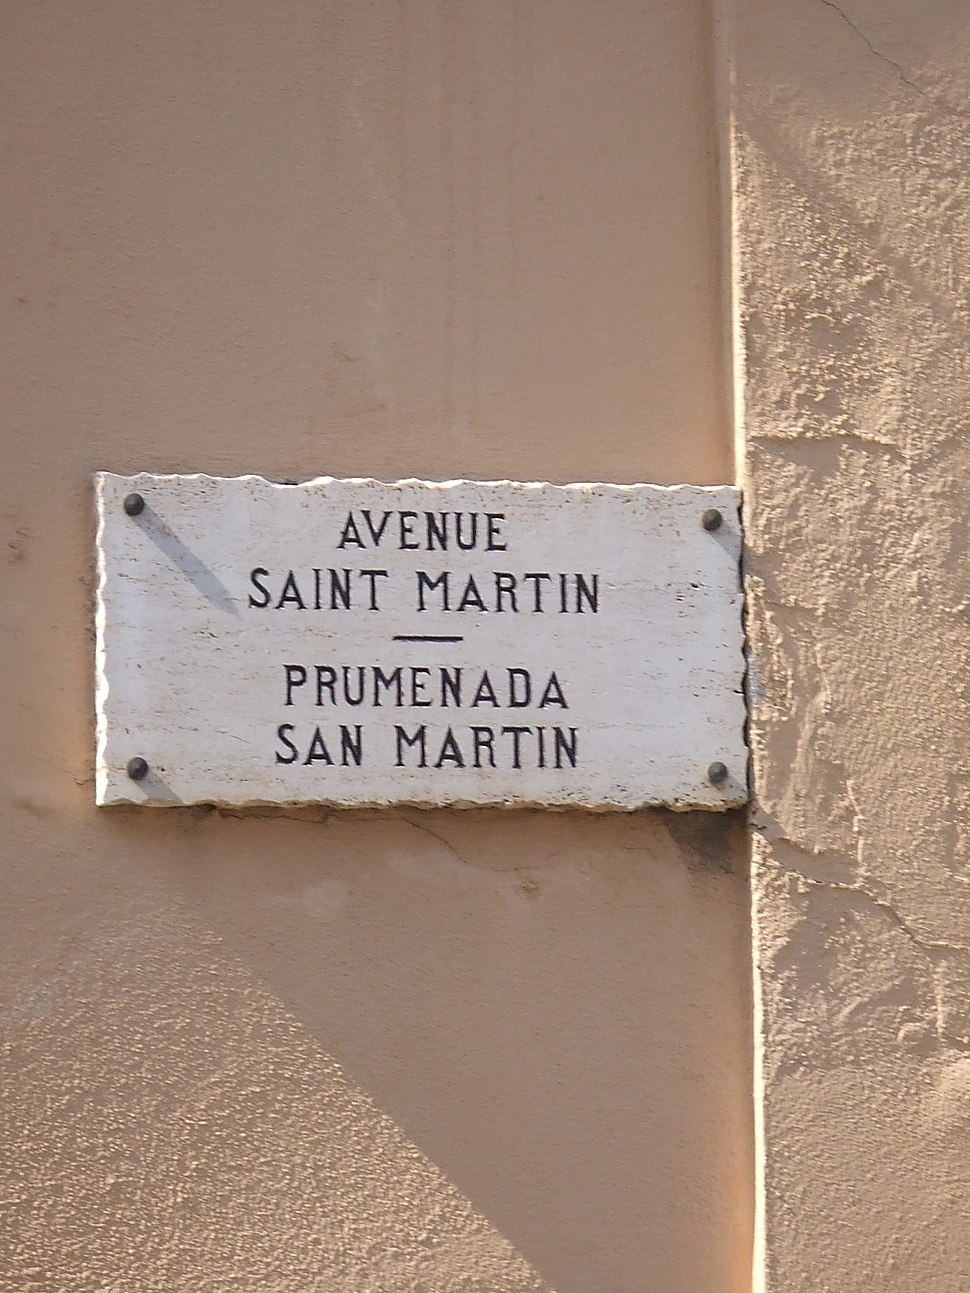 Street sign in Monégasc-French in MonacoVille